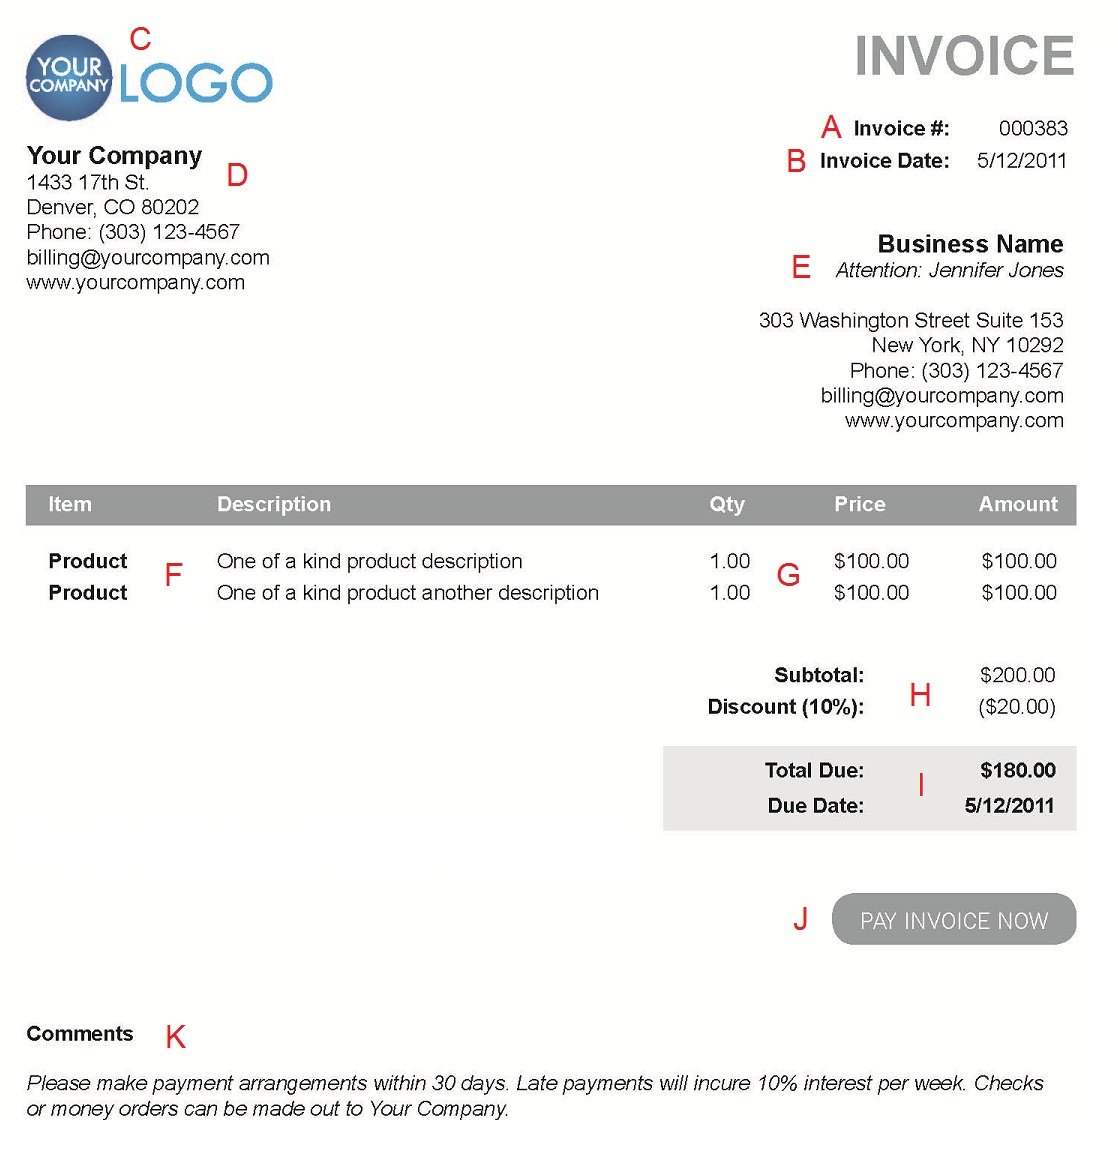 Centralasianshepherdus  Remarkable The  Different Sections Of An Electronic Payment Invoice With Gorgeous A  With Alluring Template For Invoice Word Also Create A Invoice For Free In Addition Consultancy Invoice Template And Credit Invoice Definition As Well As Copy Of An Invoice Template Additionally Printable Billing Invoice From Paysimplecom With Centralasianshepherdus  Gorgeous The  Different Sections Of An Electronic Payment Invoice With Alluring A  And Remarkable Template For Invoice Word Also Create A Invoice For Free In Addition Consultancy Invoice Template From Paysimplecom